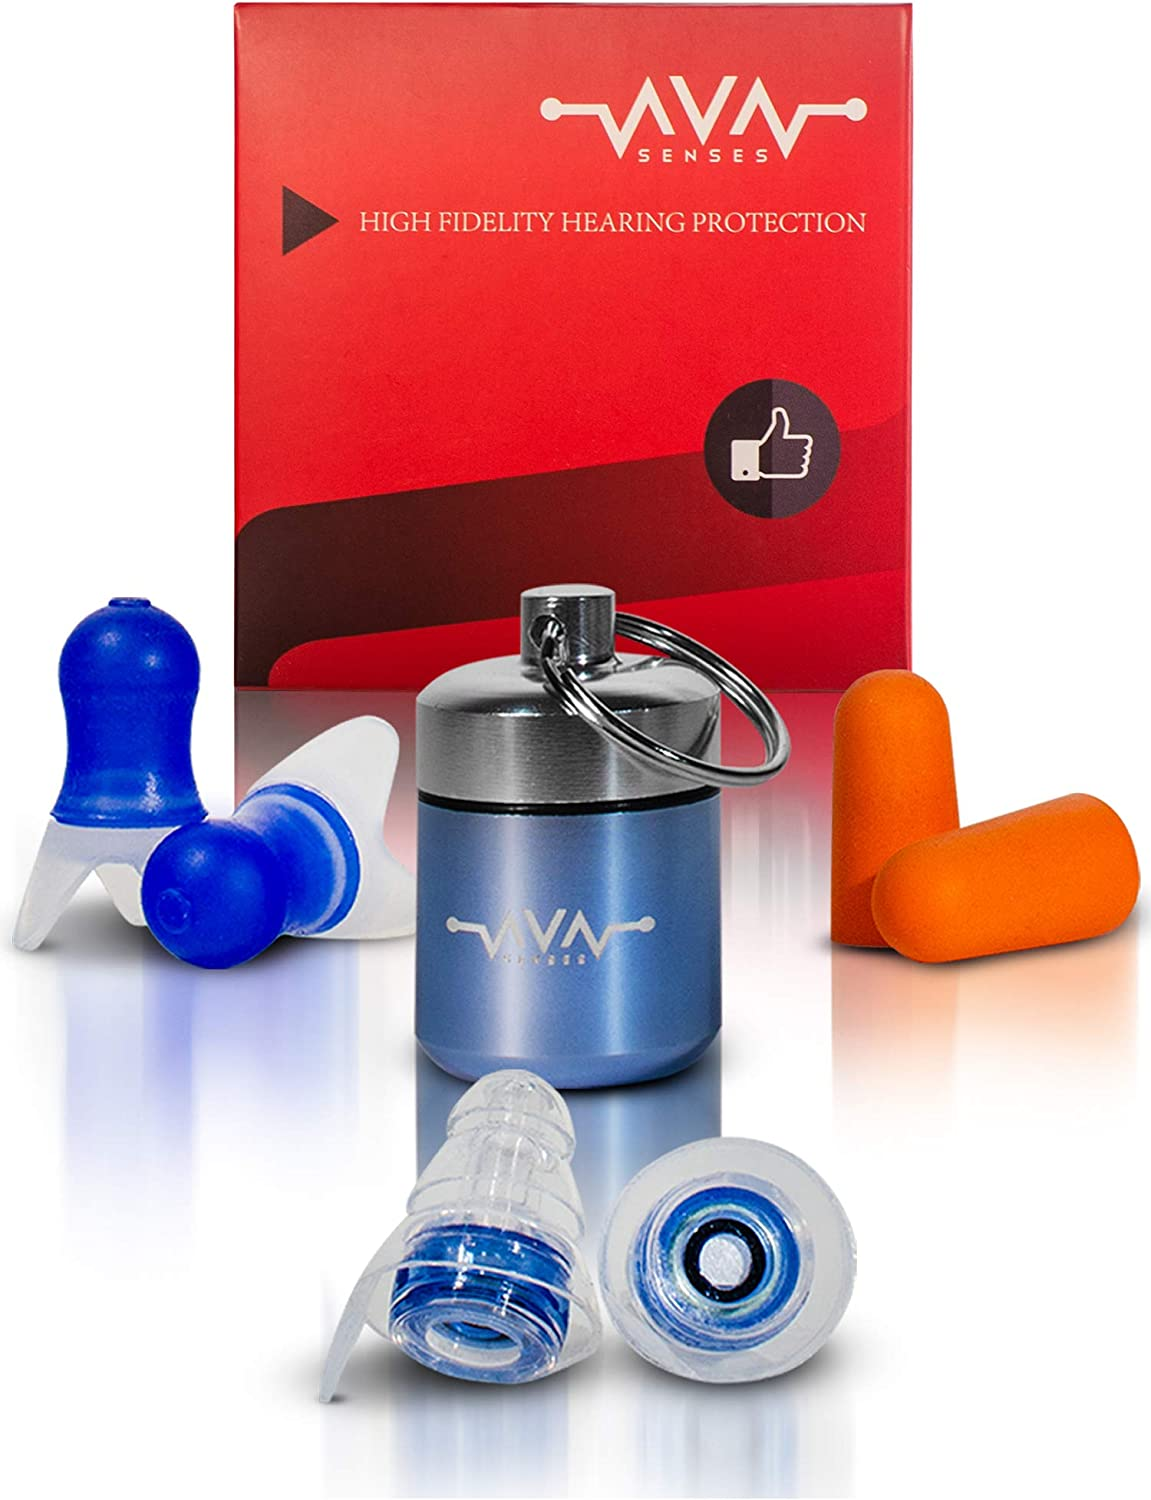 High Fidelity Earplugs for Concerts, Earplugs Sound Blocking